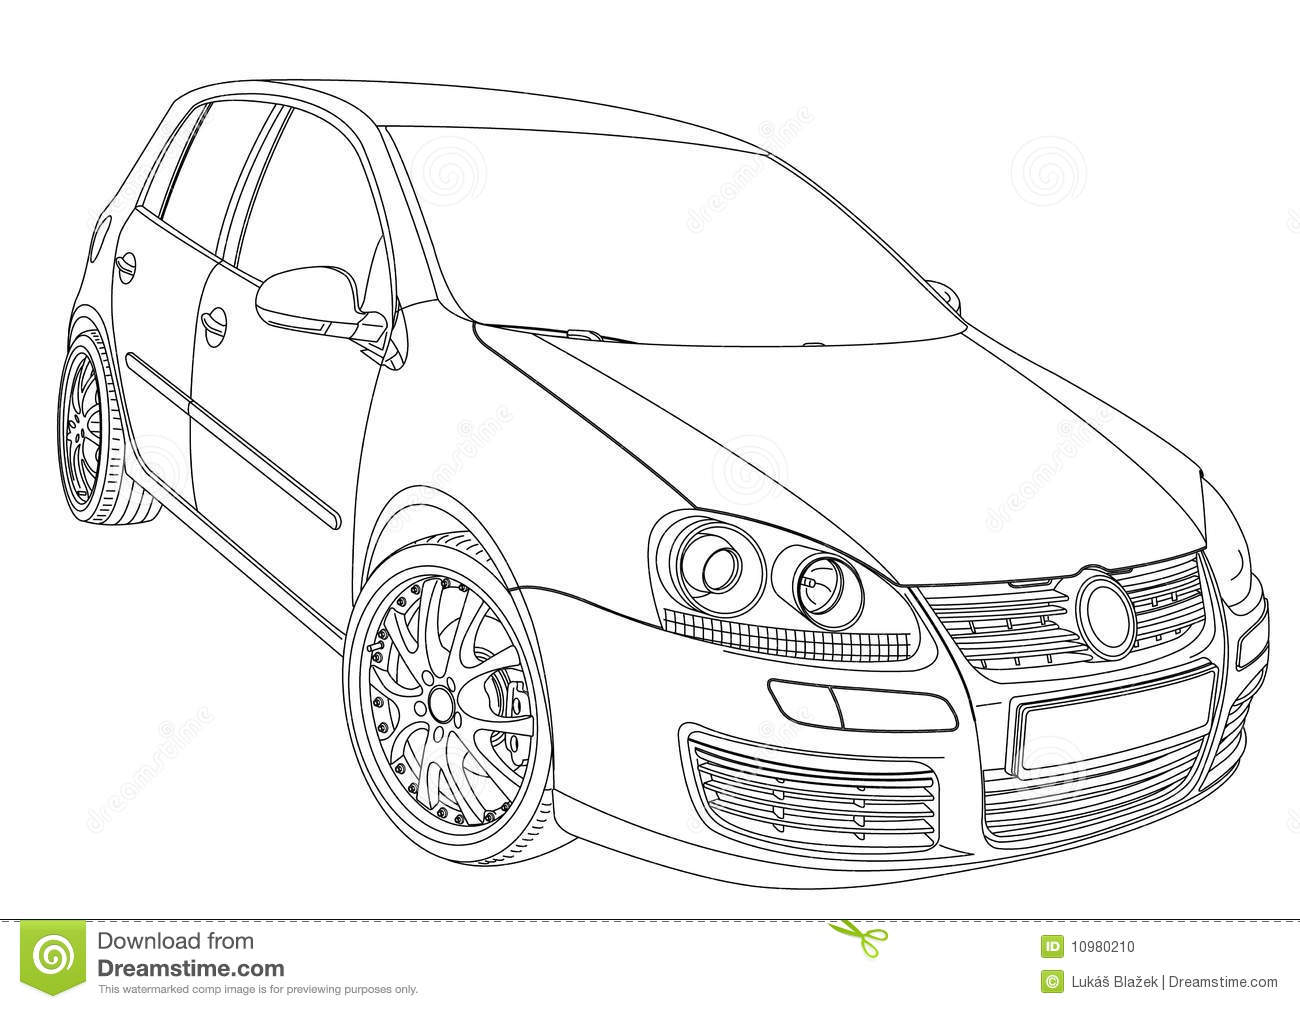 Golf 5 De Volkswagen Illustration De Vecteur Illustration